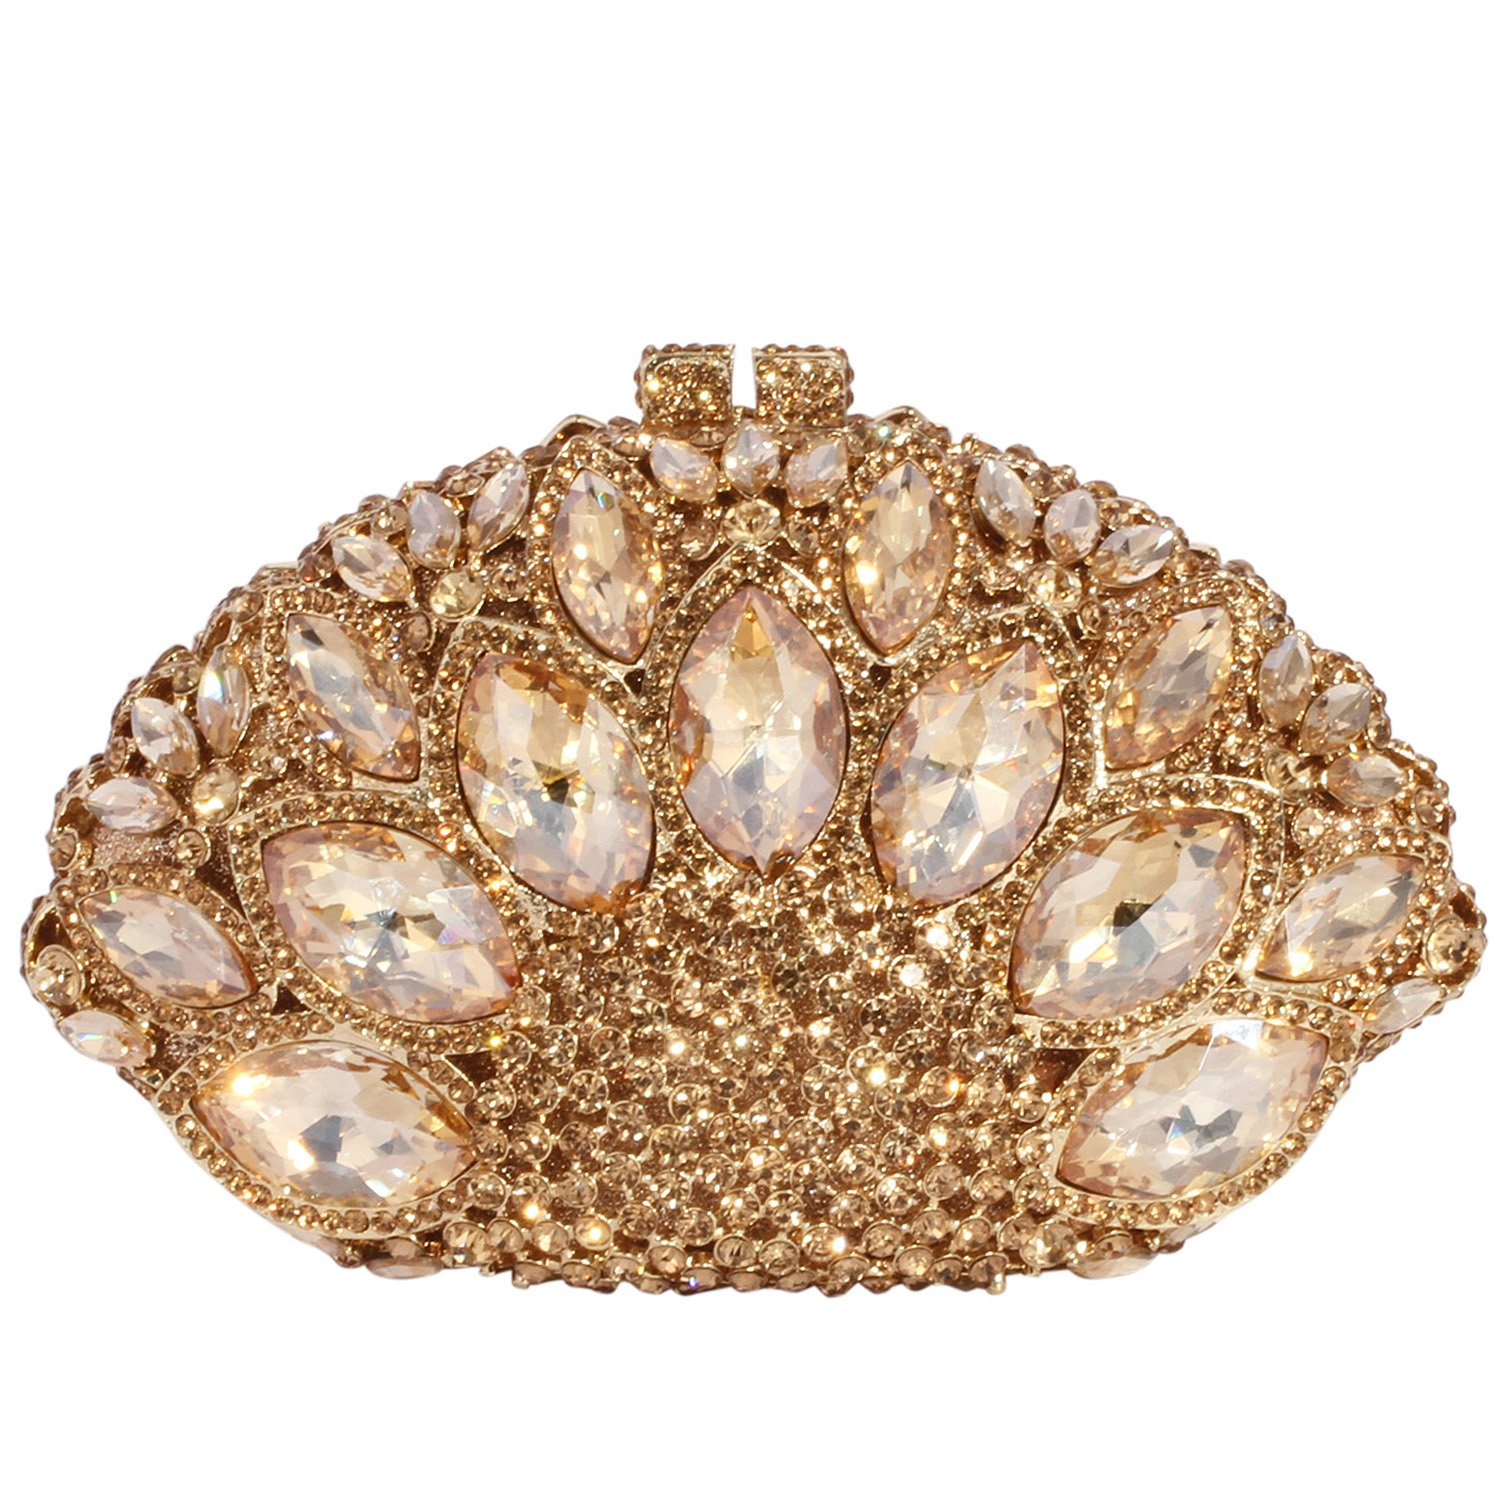 Digabi Fan-shaped Purses Peacock Tail Fashion women Crystal Evening Clutch Bags (One Size : 7.1 IN (L) x 4.72 IN (H) x 2.95 IN (W), Champagne Crystal - Gold Plated)